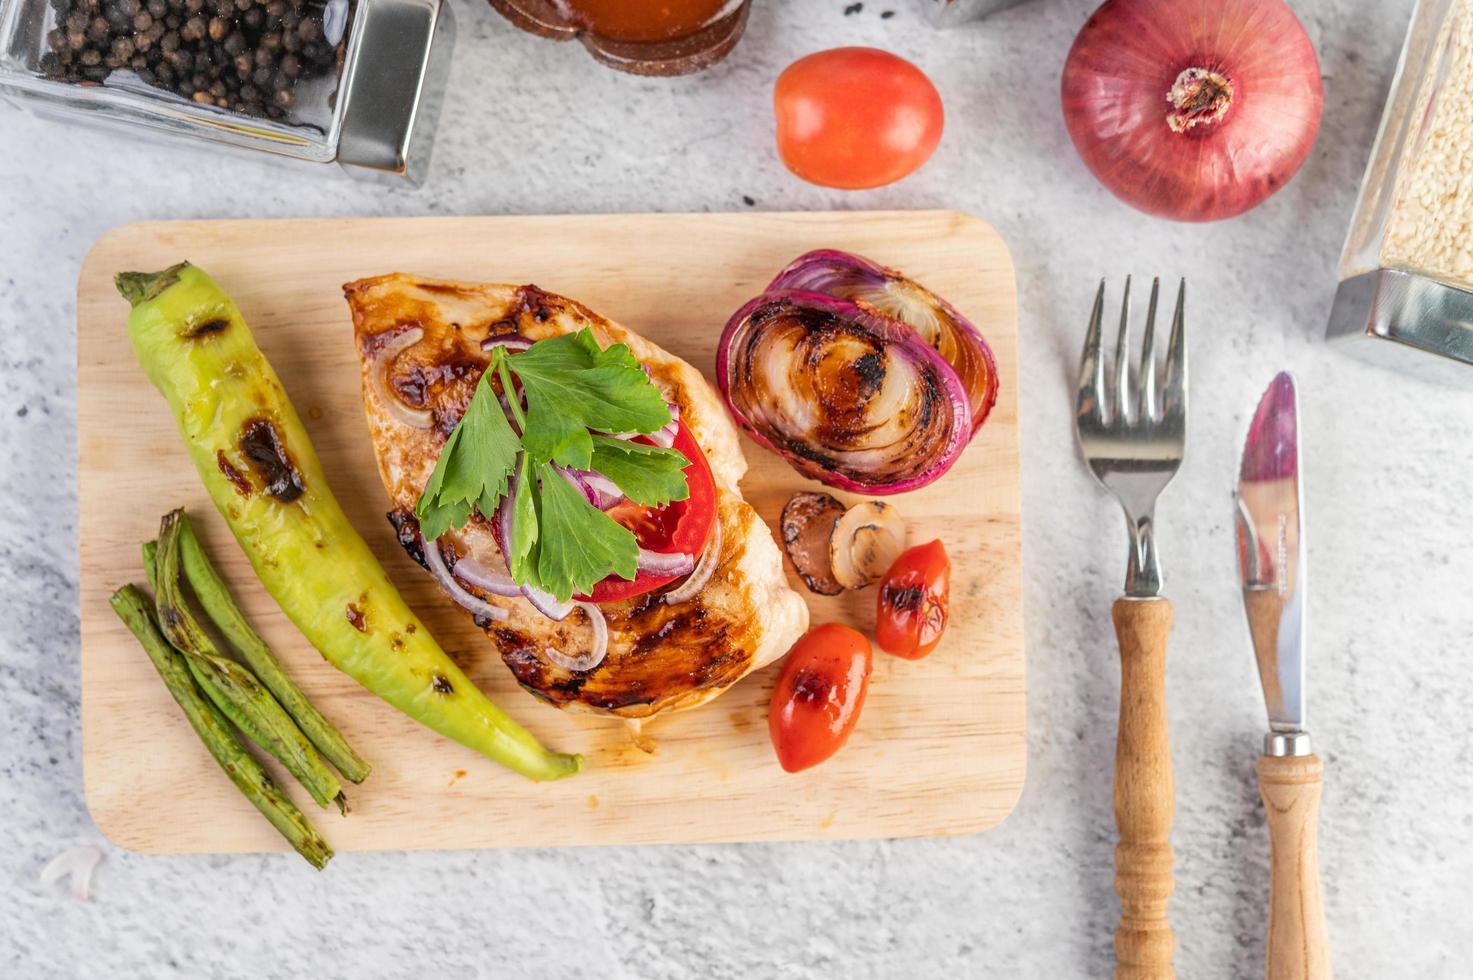 Grilled chicken and vegetables photo